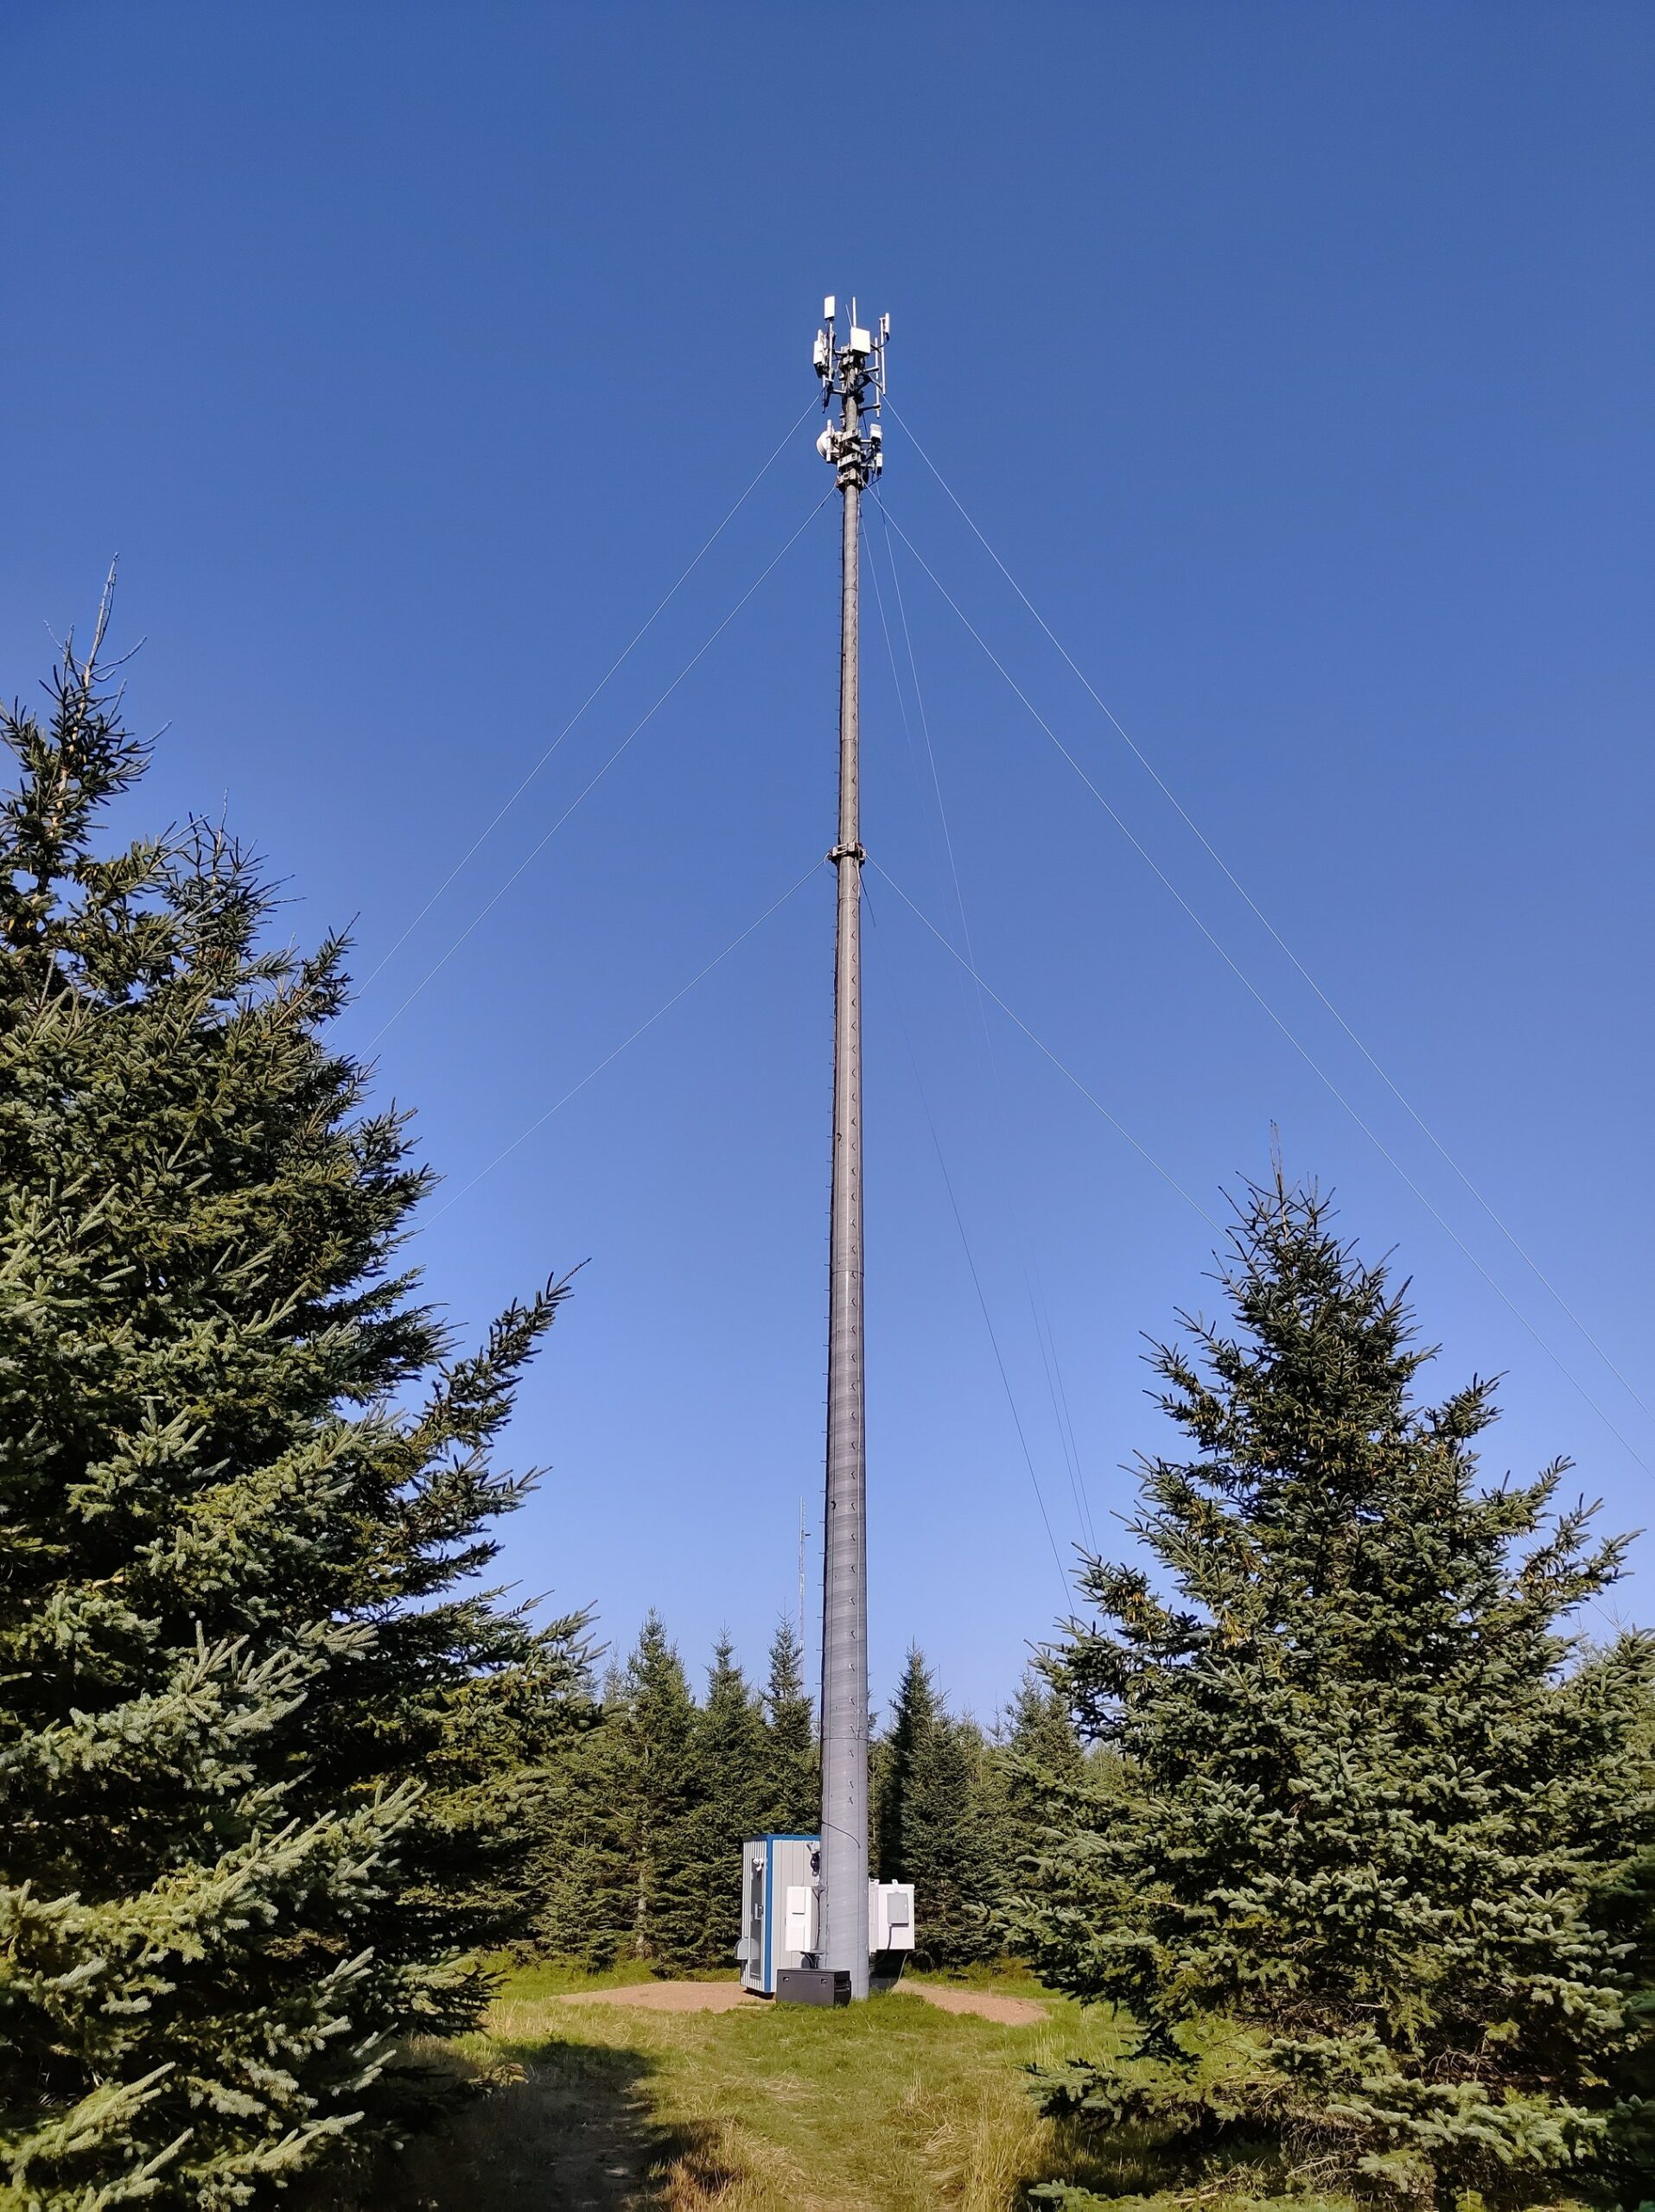 An Xplornet 5G mast standing in a clearning.